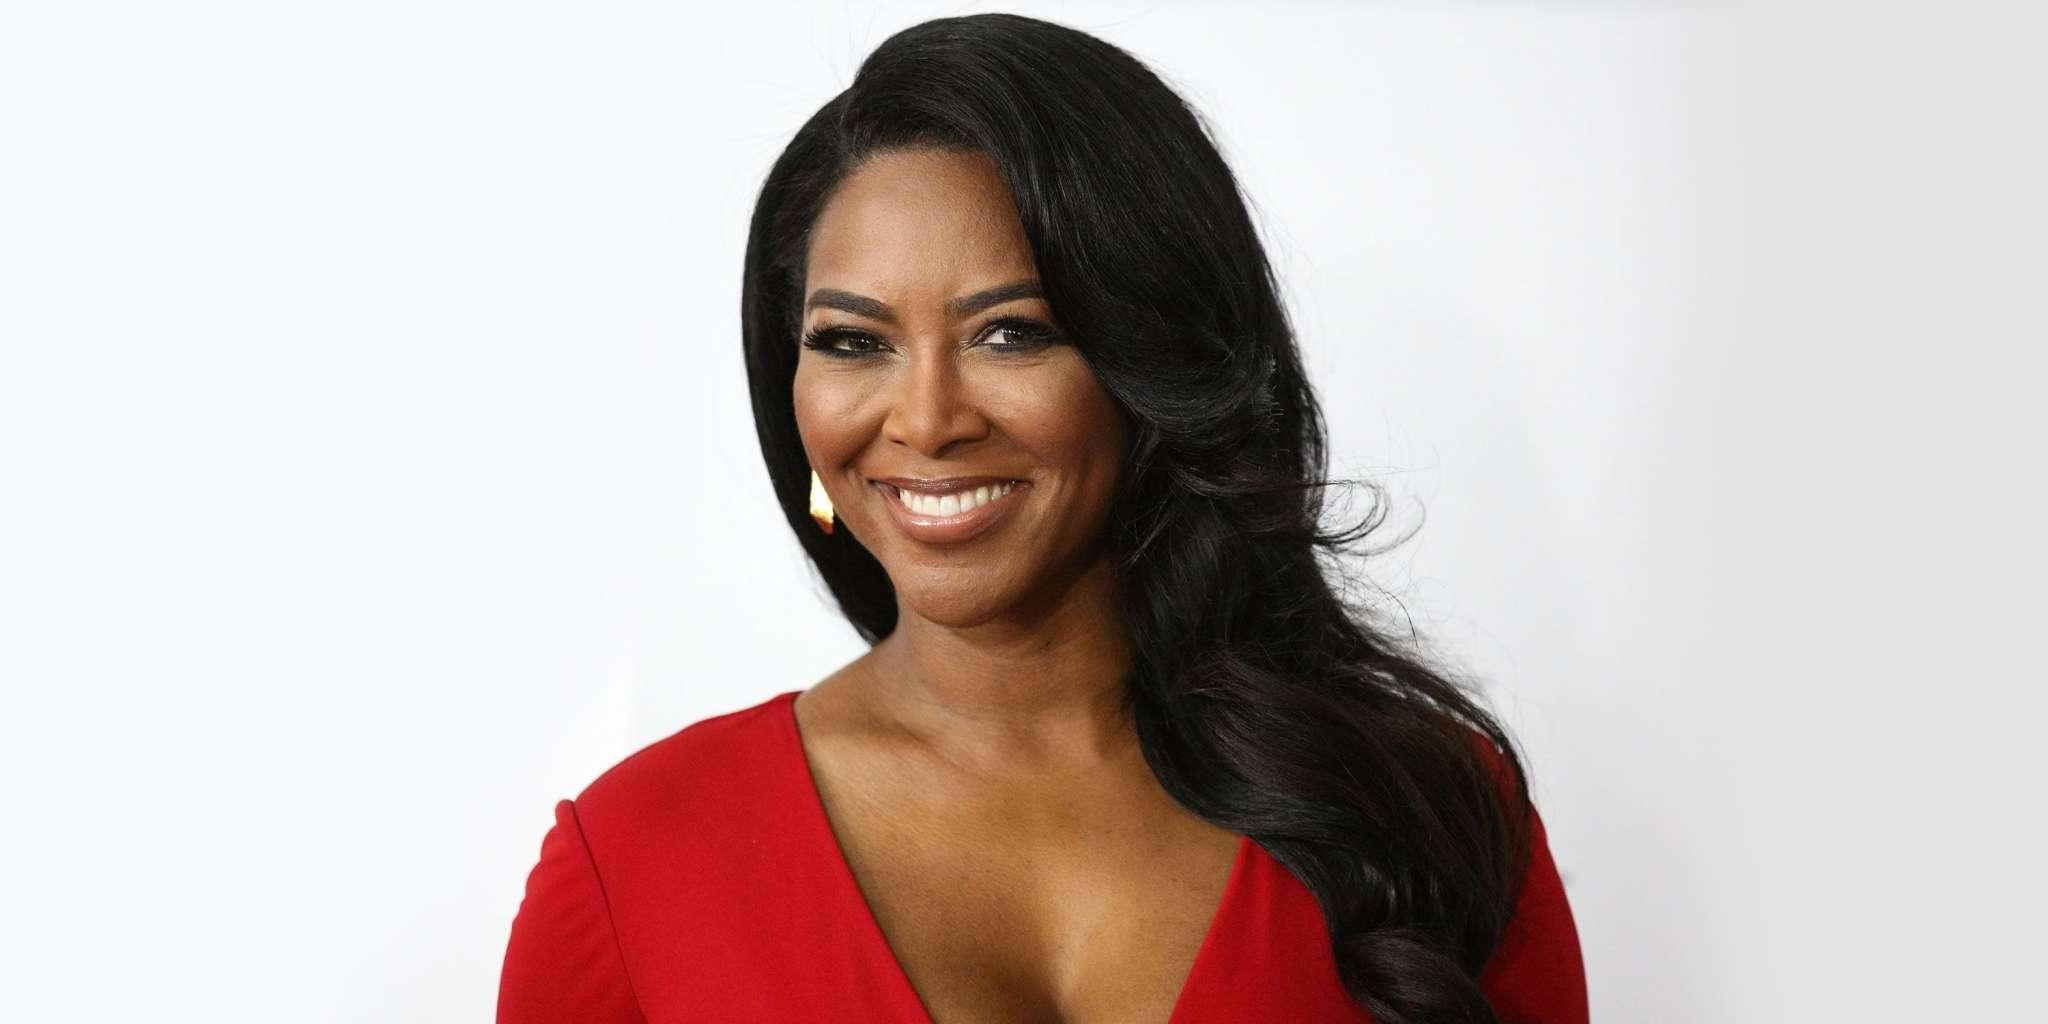 Kenya Moore Lost All Her Covid Weight - Check Out The Photo That Has Fans Drooling